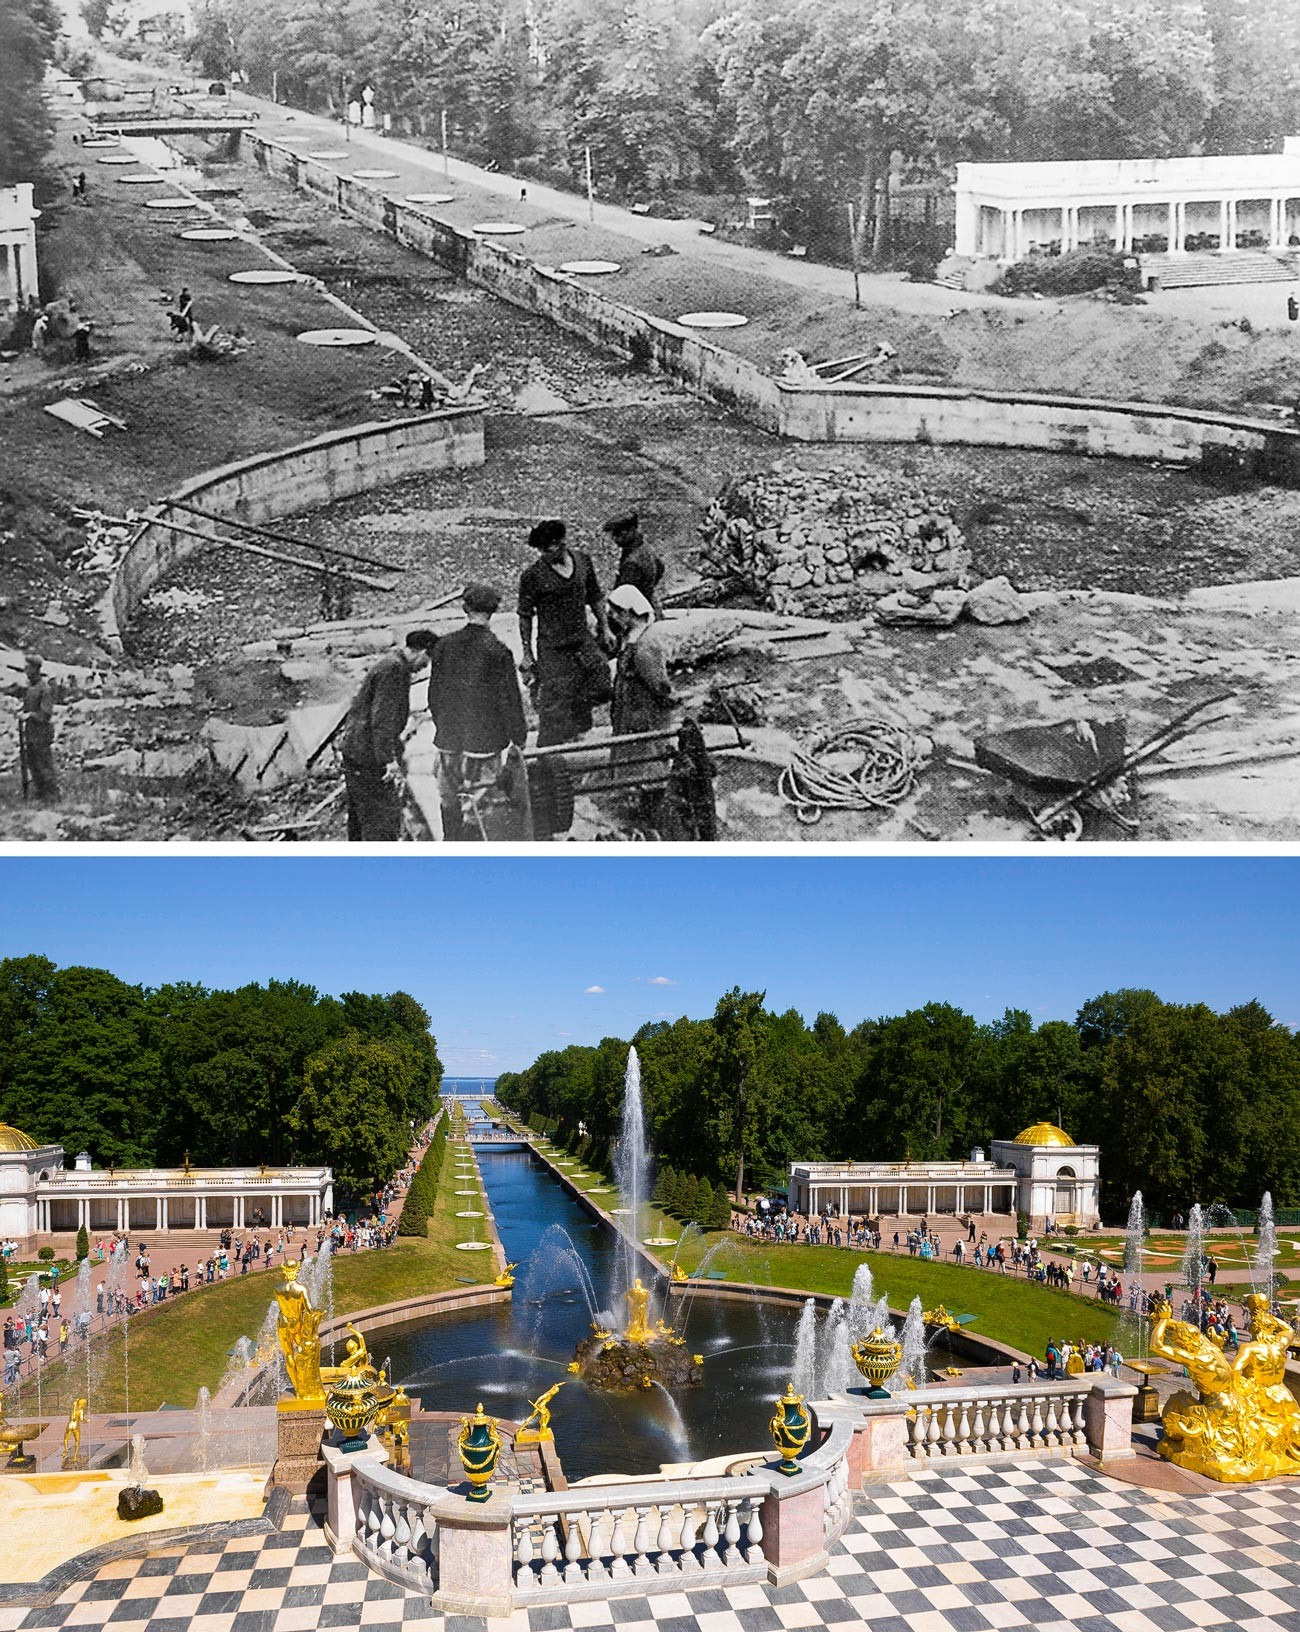 The Grand Cascade fountain in 1946 and now